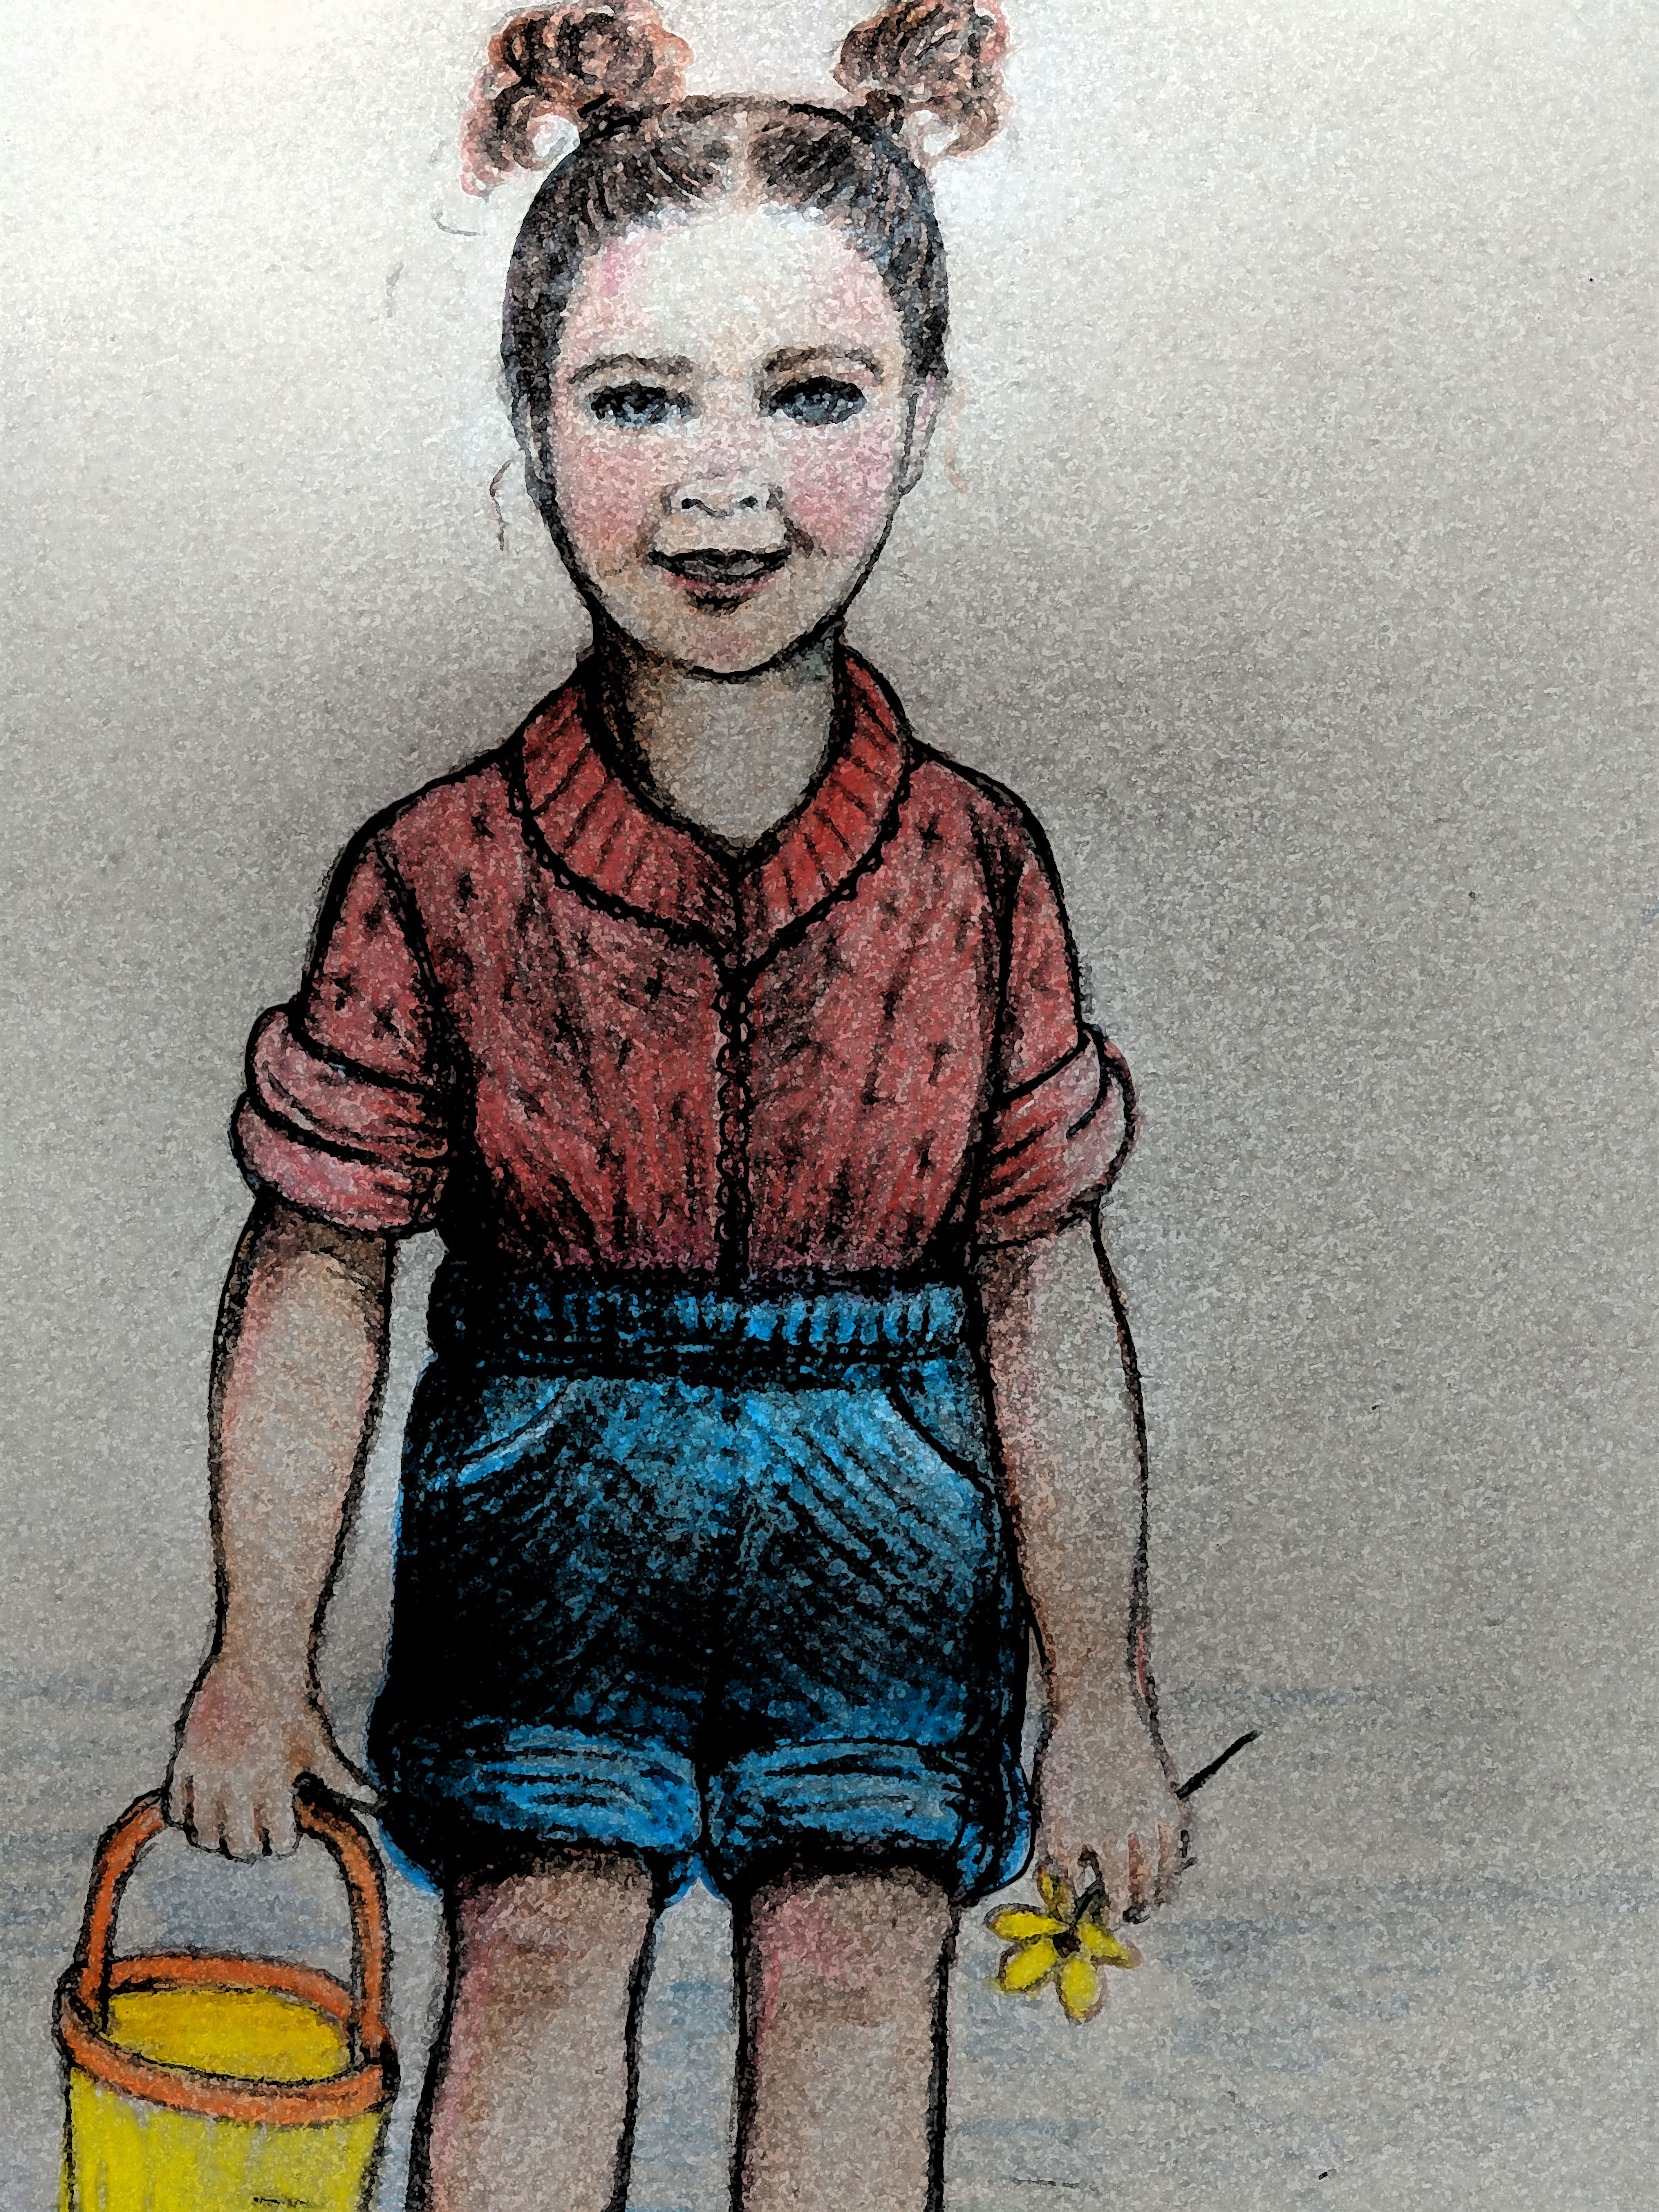 "That's me but it also looks like my mother when she was a little girl. I drew it from a memory of a faded photograph of myself at 3 1/2 standing in the Gulf of Mexico.  I don't remember playing in the water but I do recall other parts of the trip I took with my mother by train from Iowa to Brownsville, Texas.   I remember the porter making up the bed and then coming back in because I dropped my toothbrush between the bed and the wall. I can hear the clack-clack of wheels on rails and see the lights as we pulled into a station, the mail pouch on a hook.   Everything is brown in my memory including Brownsville station — small, wooden and dimly lit by a single yellow bug light. A man came dashing up to meet us in a brown suit, tie and hat. My mother called him 'Brownie' and he called her 'Toots'. They hugged like old friends.   ""Is he Brownie because of his clothes?"" I wanted to know but my mother ignored me and continued to casually ignore me for the rest of the visit. I came to see this as a gift; I saw her as someone besides my mother, on her own and being herself and also letting me be myself which I took to like a duck in water. She hung out with her sister and women friends and I hung out with my grandfather who had a pure, uncomplicated love for me that I could feel and which I held as a touchstone for the rest of my life. I was comfortable by his side as he worked.   My grandfather gave me something which I accidentally dropped through the slats of what I thought was a raft; I remained unbearably sad about it. Years later, I asked my mother what it was. She remembered my hysterics. ""It was just a yellow daisy and you were on the dock.""   We stepped over the border into Mexico and into dirt roads, dust and color. I followed behind my mother and her sister and friends, twirling in a bright green cotton dress with colorful embroidery and ribbons. I picked up the travel bug and never let it go."